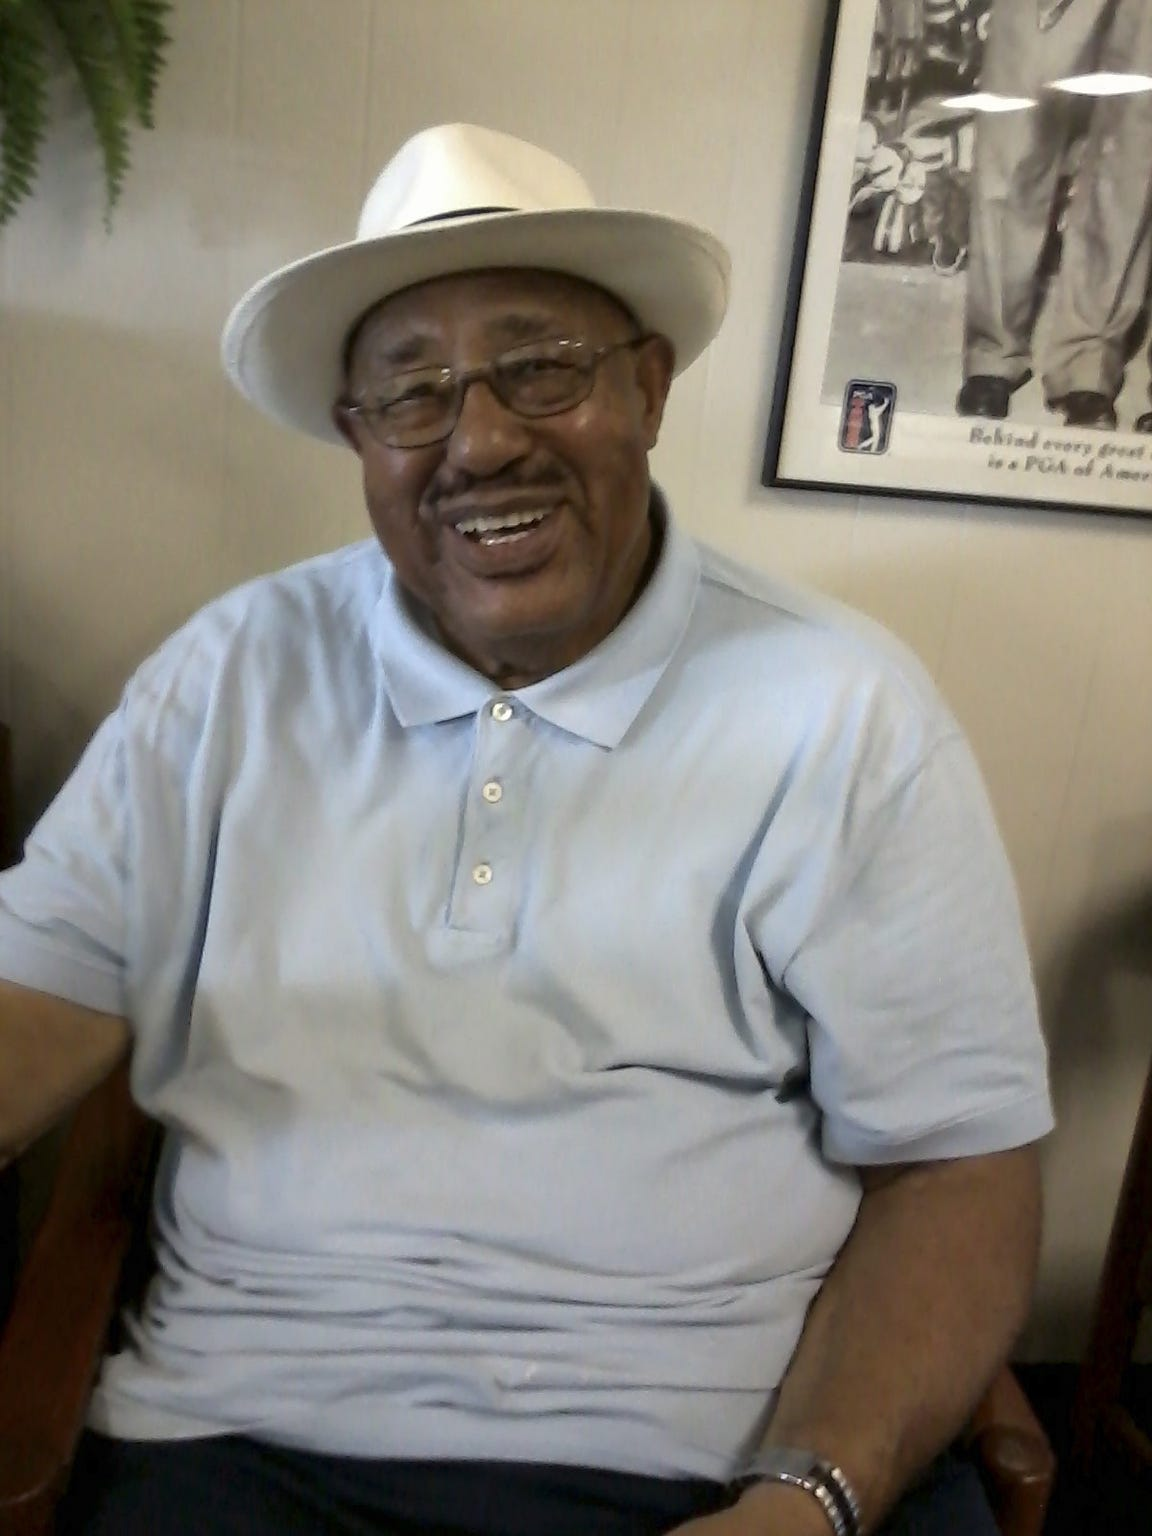 Bob Hill won 44 games and lost just 15 when he served as JSU's coach from 1971 to 1976.